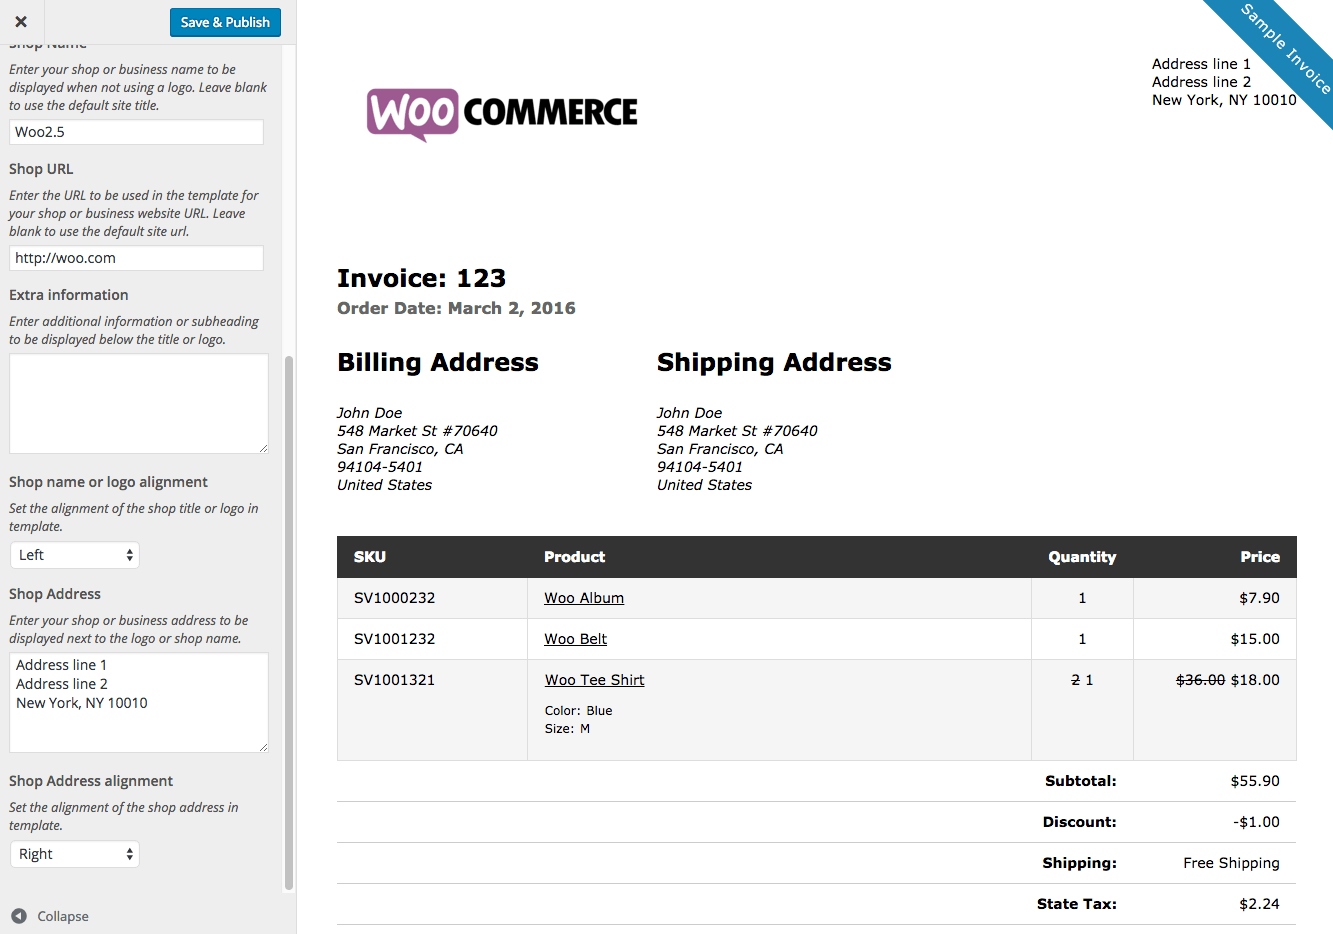 Angkajituus  Pleasant Woocommerce Print Invoices Amp Packing Lists  Woocommerce Docs With Fair Woocommerce Print Invoices  Packing Lists Customizer With Extraordinary Toys R Us Exchange Without Receipt Also Car Repair Receipt Template In Addition Biscuit Receipt And Automotive Receipt As Well As Certified Return Receipt Cost  Additionally Counterfeit Receipts From Docswoocommercecom With Angkajituus  Fair Woocommerce Print Invoices Amp Packing Lists  Woocommerce Docs With Extraordinary Woocommerce Print Invoices  Packing Lists Customizer And Pleasant Toys R Us Exchange Without Receipt Also Car Repair Receipt Template In Addition Biscuit Receipt From Docswoocommercecom